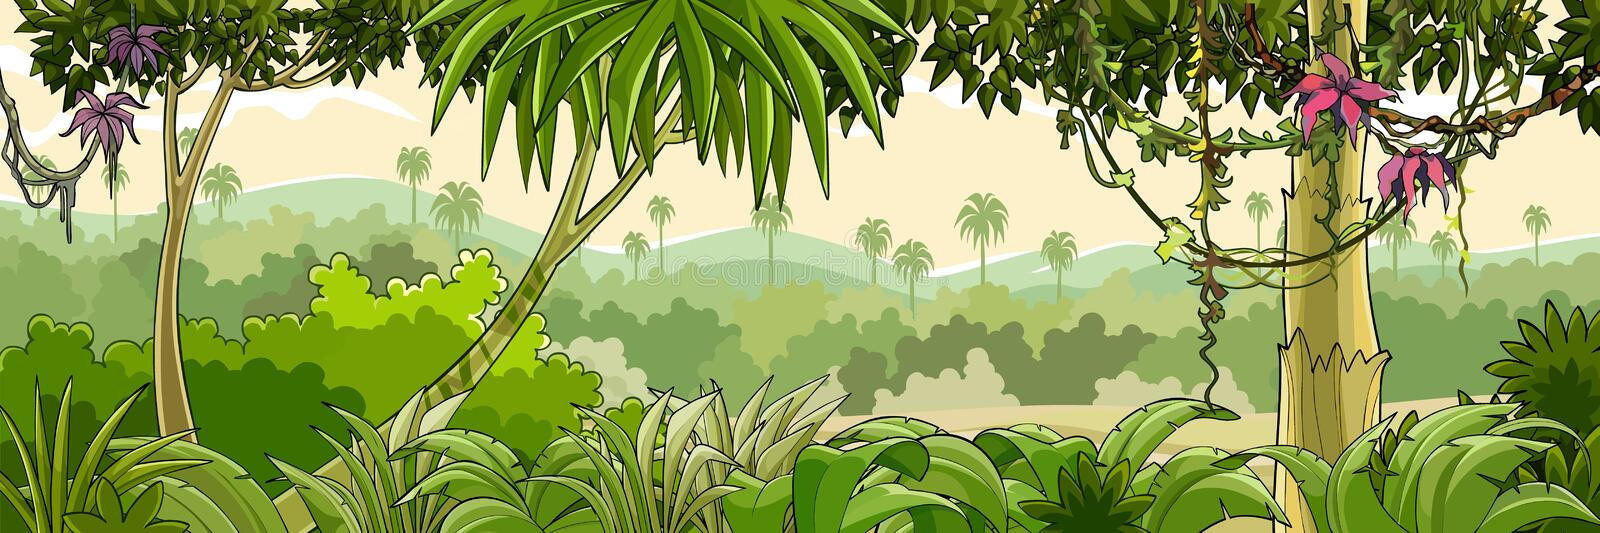 Panorama cartoon green tropical forest with palm trees. Cartoon panorama of a green tropical forest with palm trees and vines stock illustration